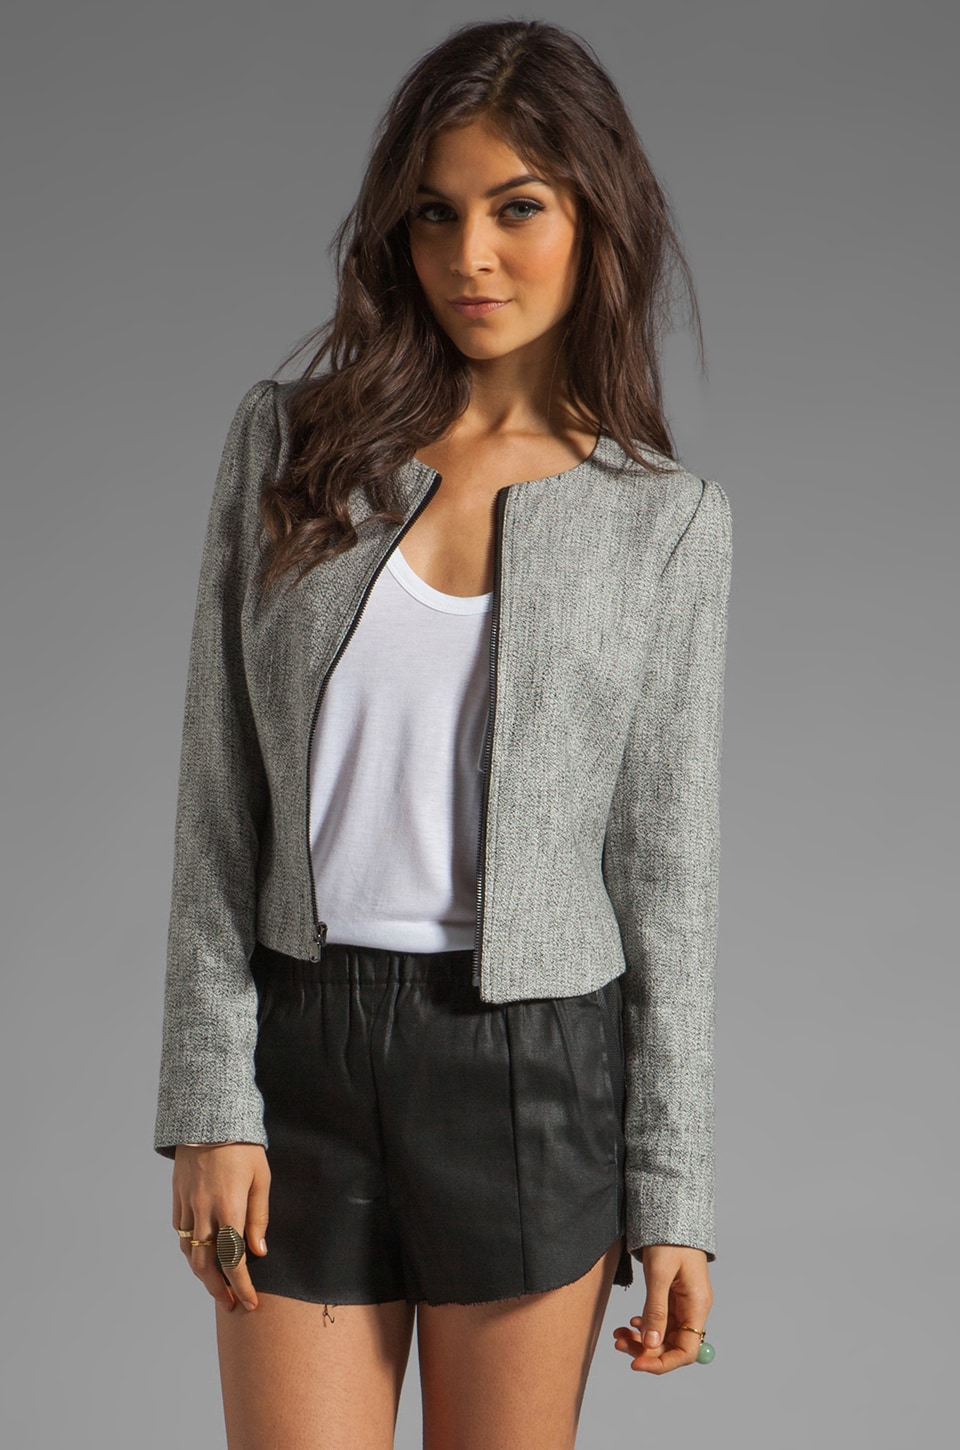 Paper Crown by Lauren Conrad Tack Tweed Jacket in Charcoal